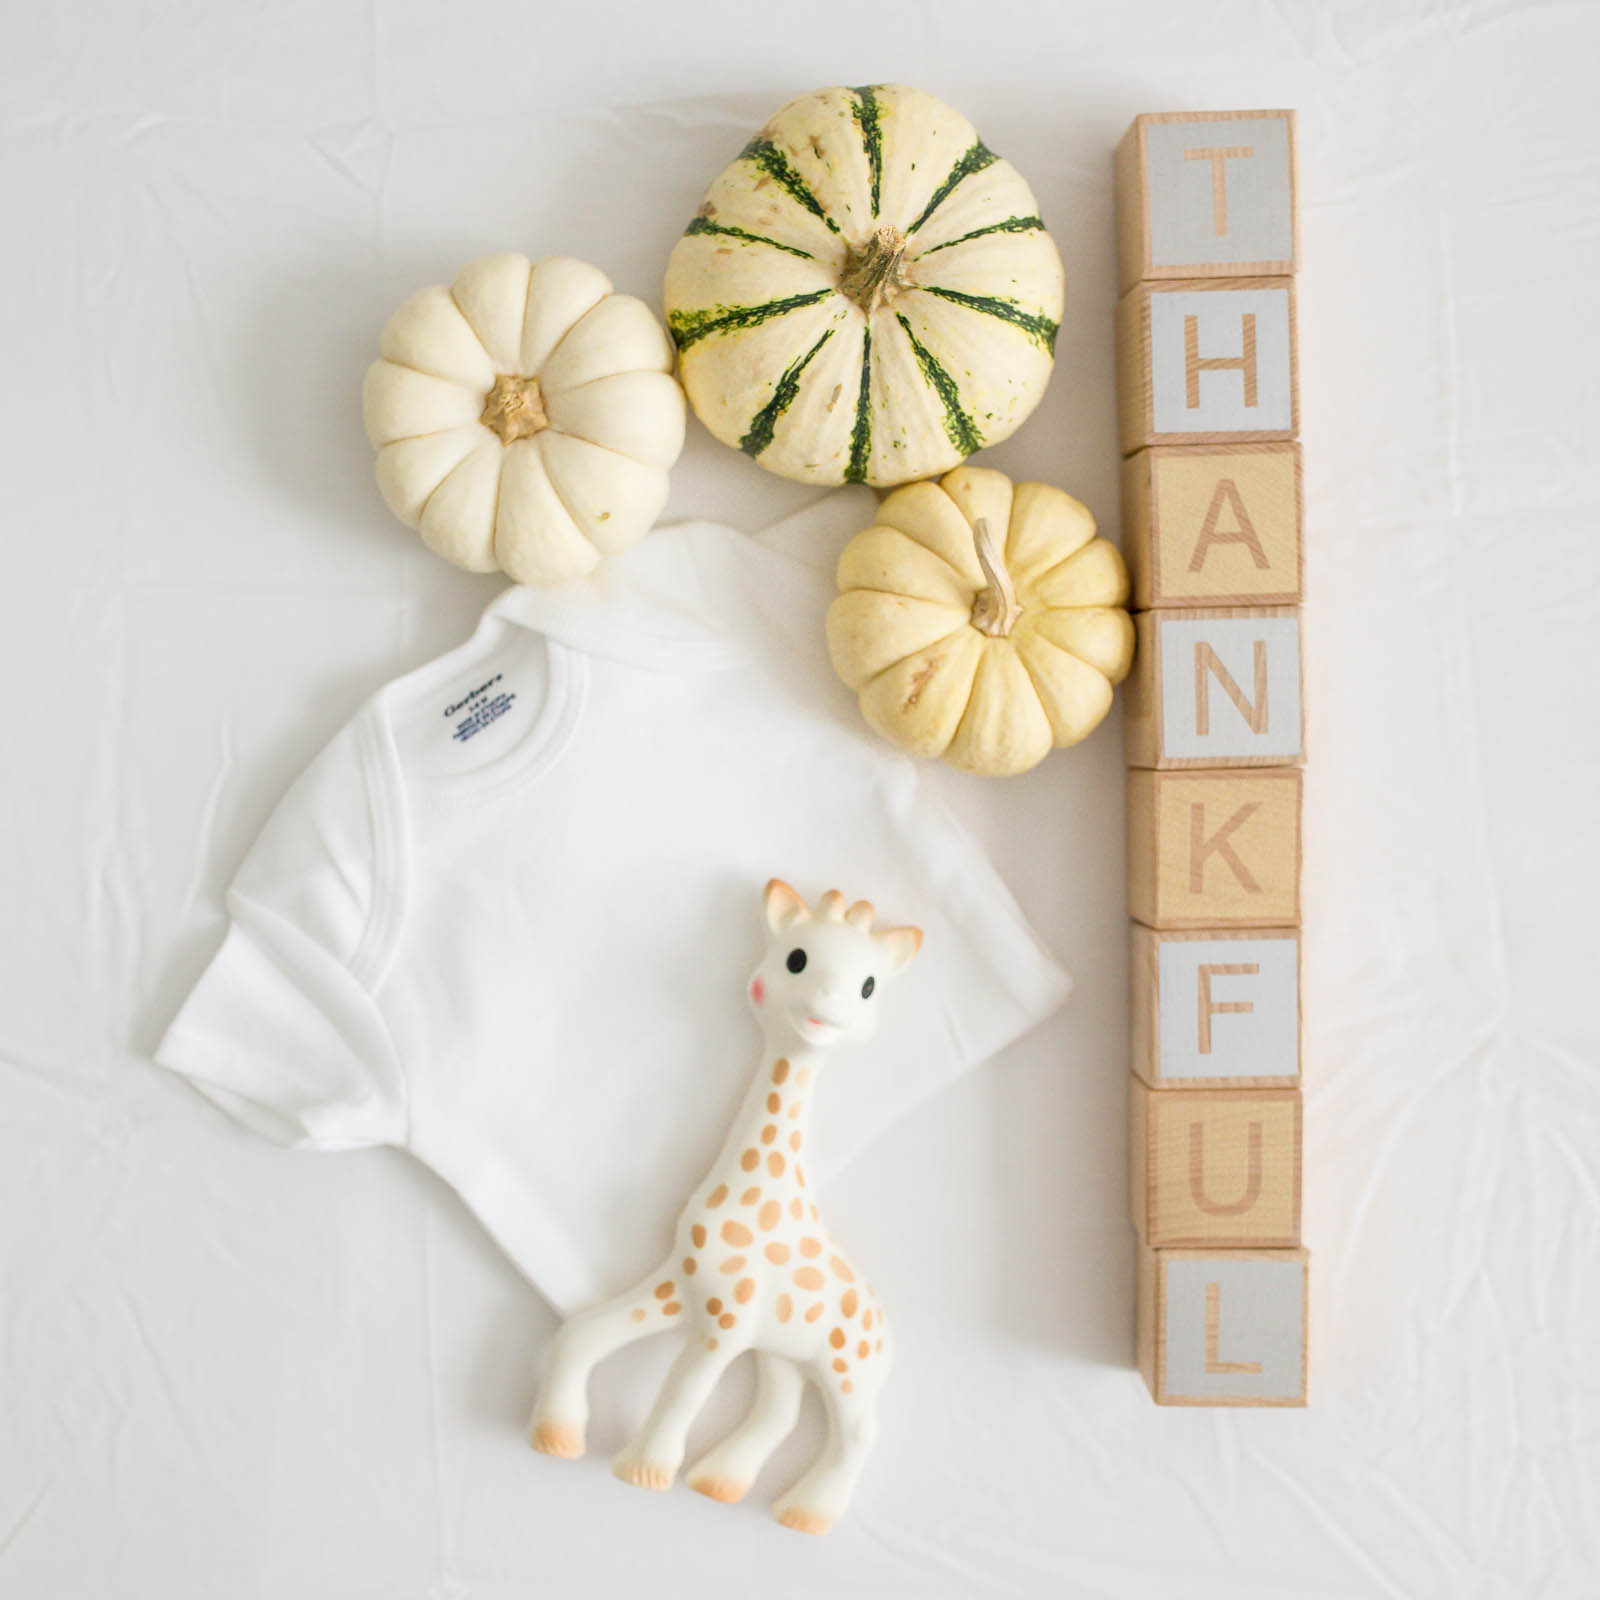 THANKFUL baby flatlay - black friday cyber weekend cyber monday sale roundup